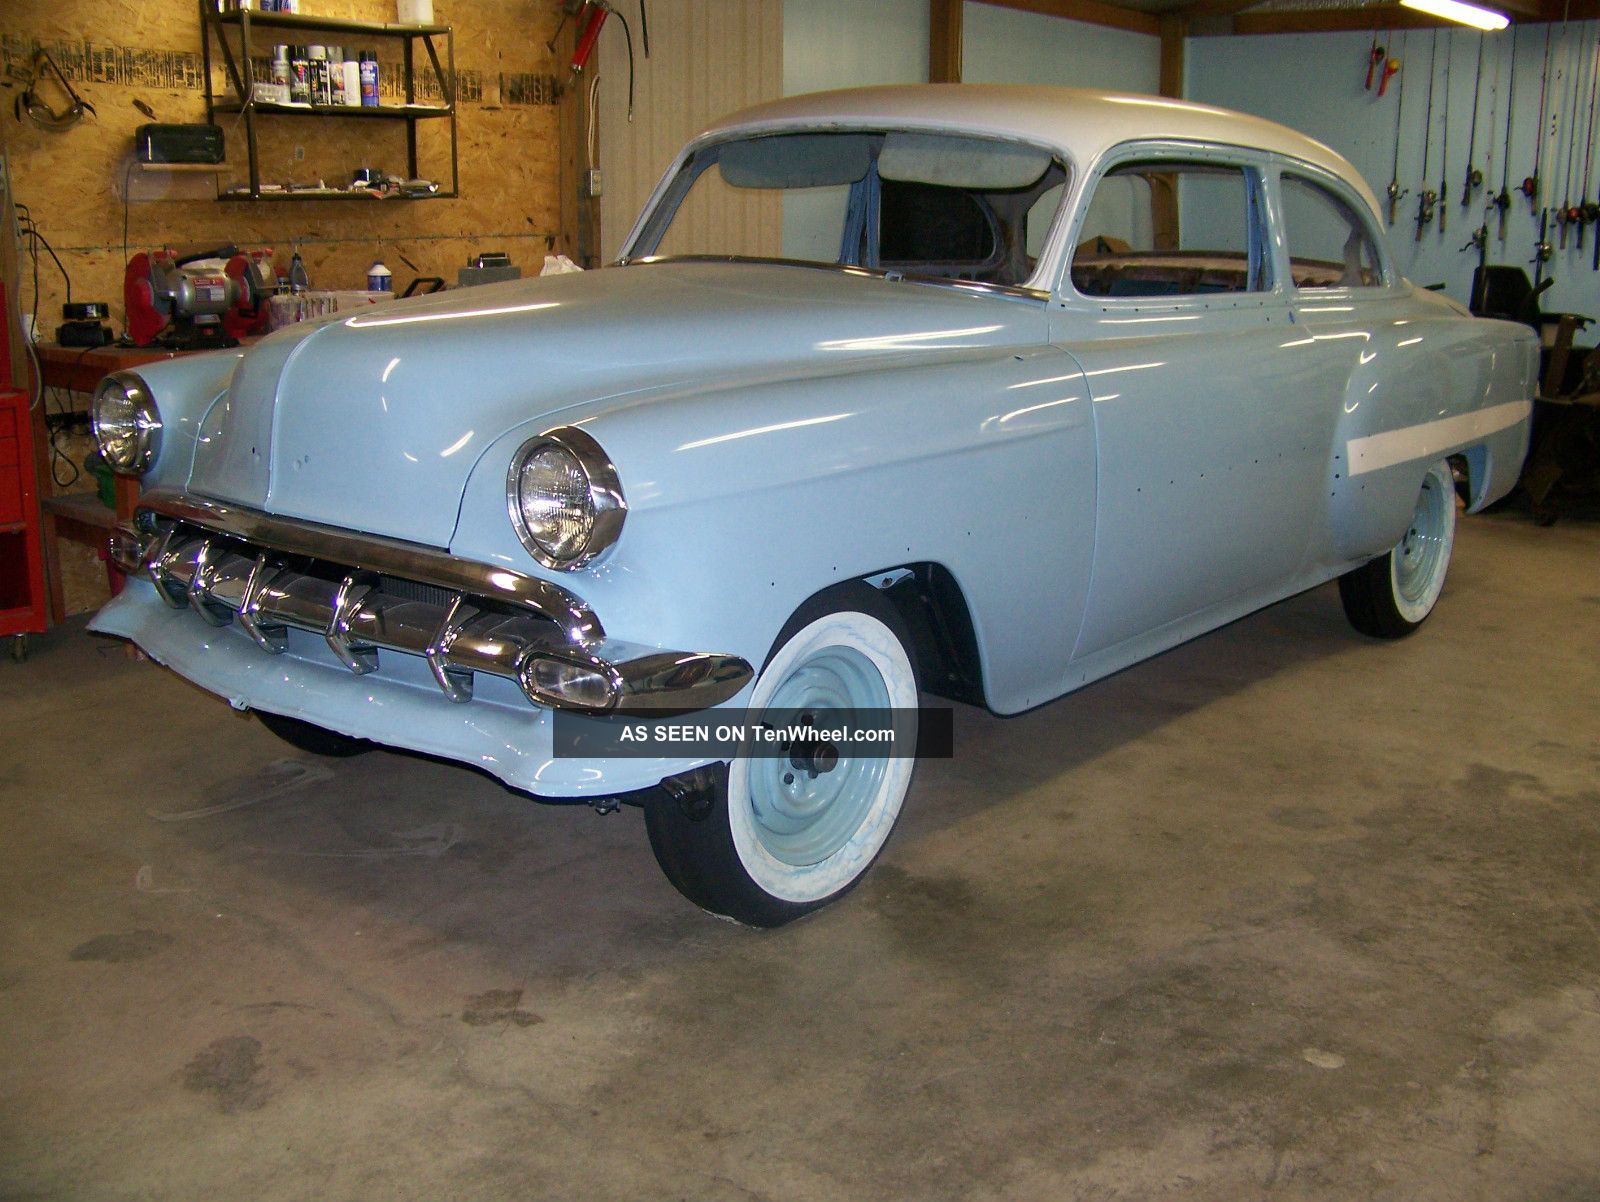 1954 Chevrolet Be Lair Classic 2 Dr Frame Off Restoration Bel Air/150/210 photo